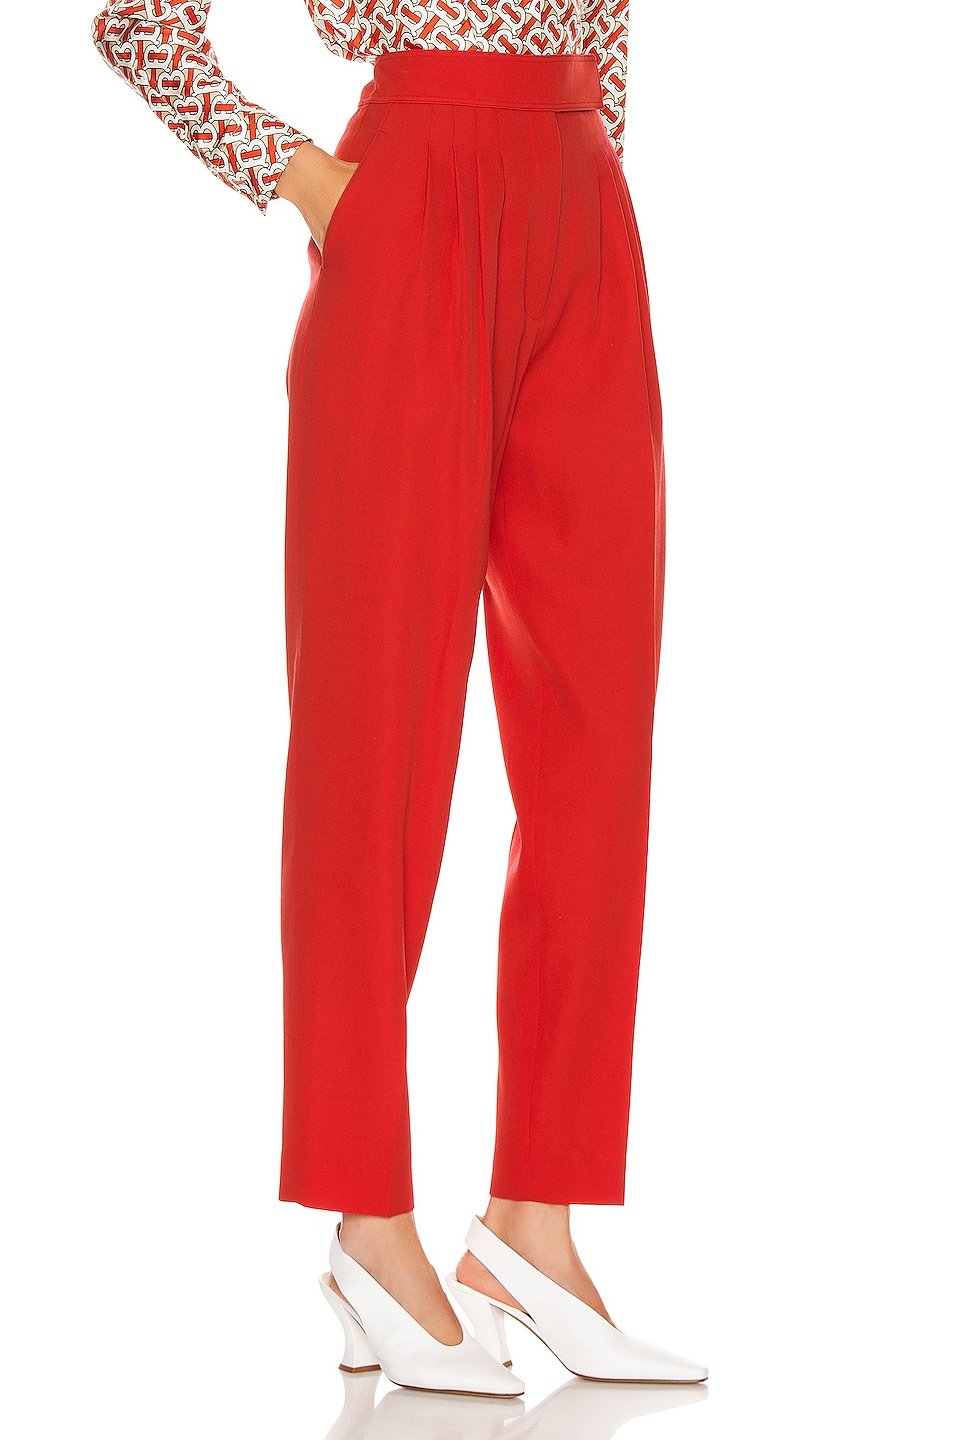 Image 2 of Burberry Marleigh Pant in Bright Red